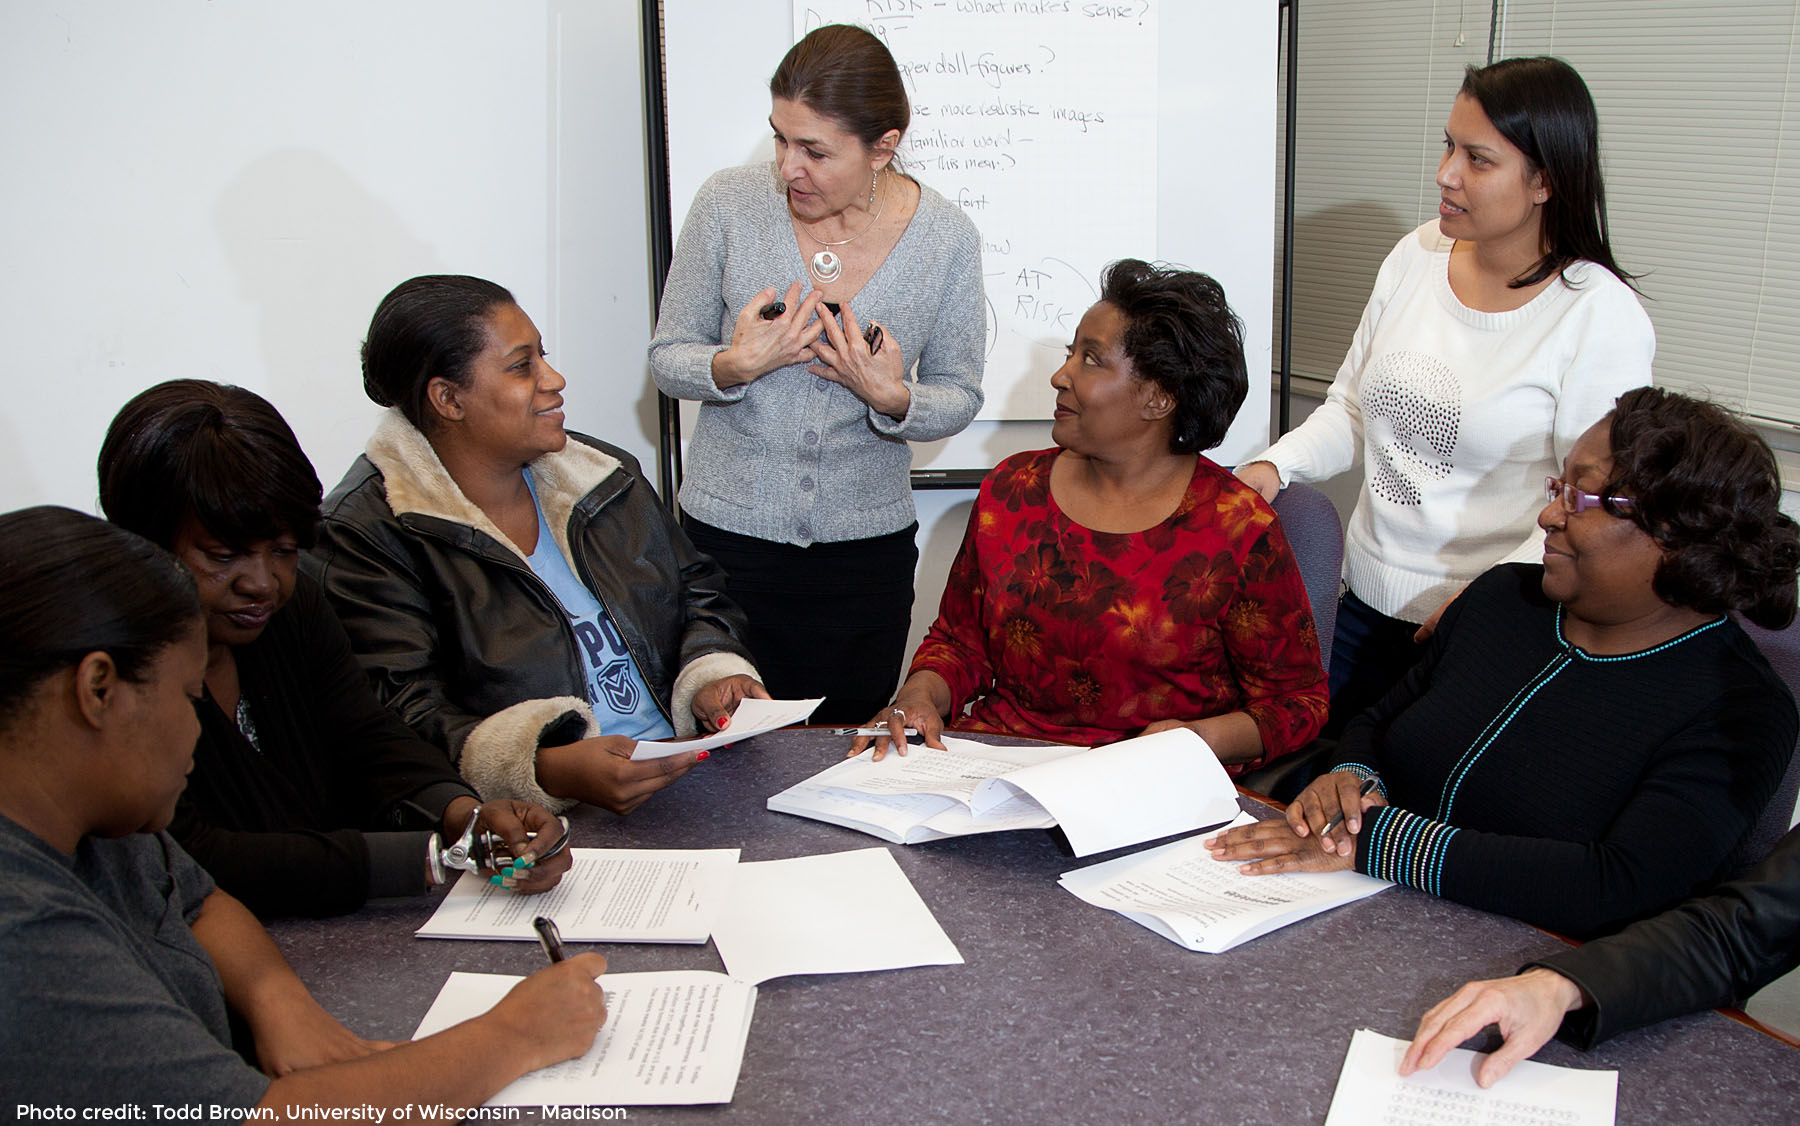 Woman discussing a topic with a diverse group